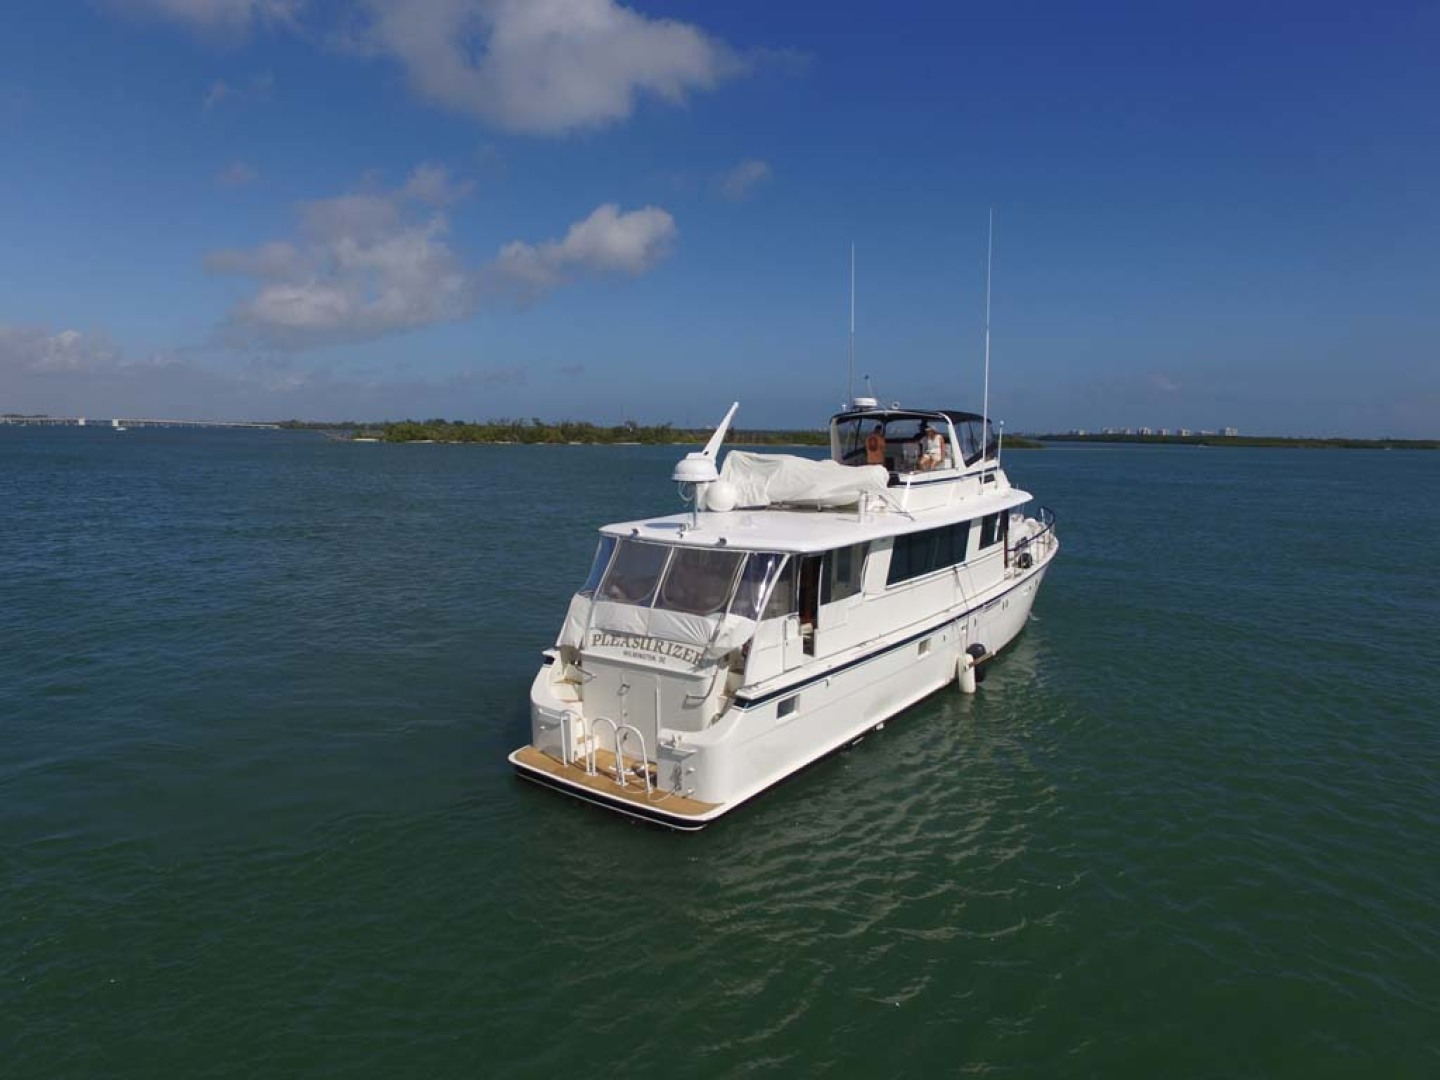 Hatteras-74 Motor Yacht 1981-Pleasurizer Fort Pierce-Florida-United States-Starboard Stern-1122241 | Thumbnail